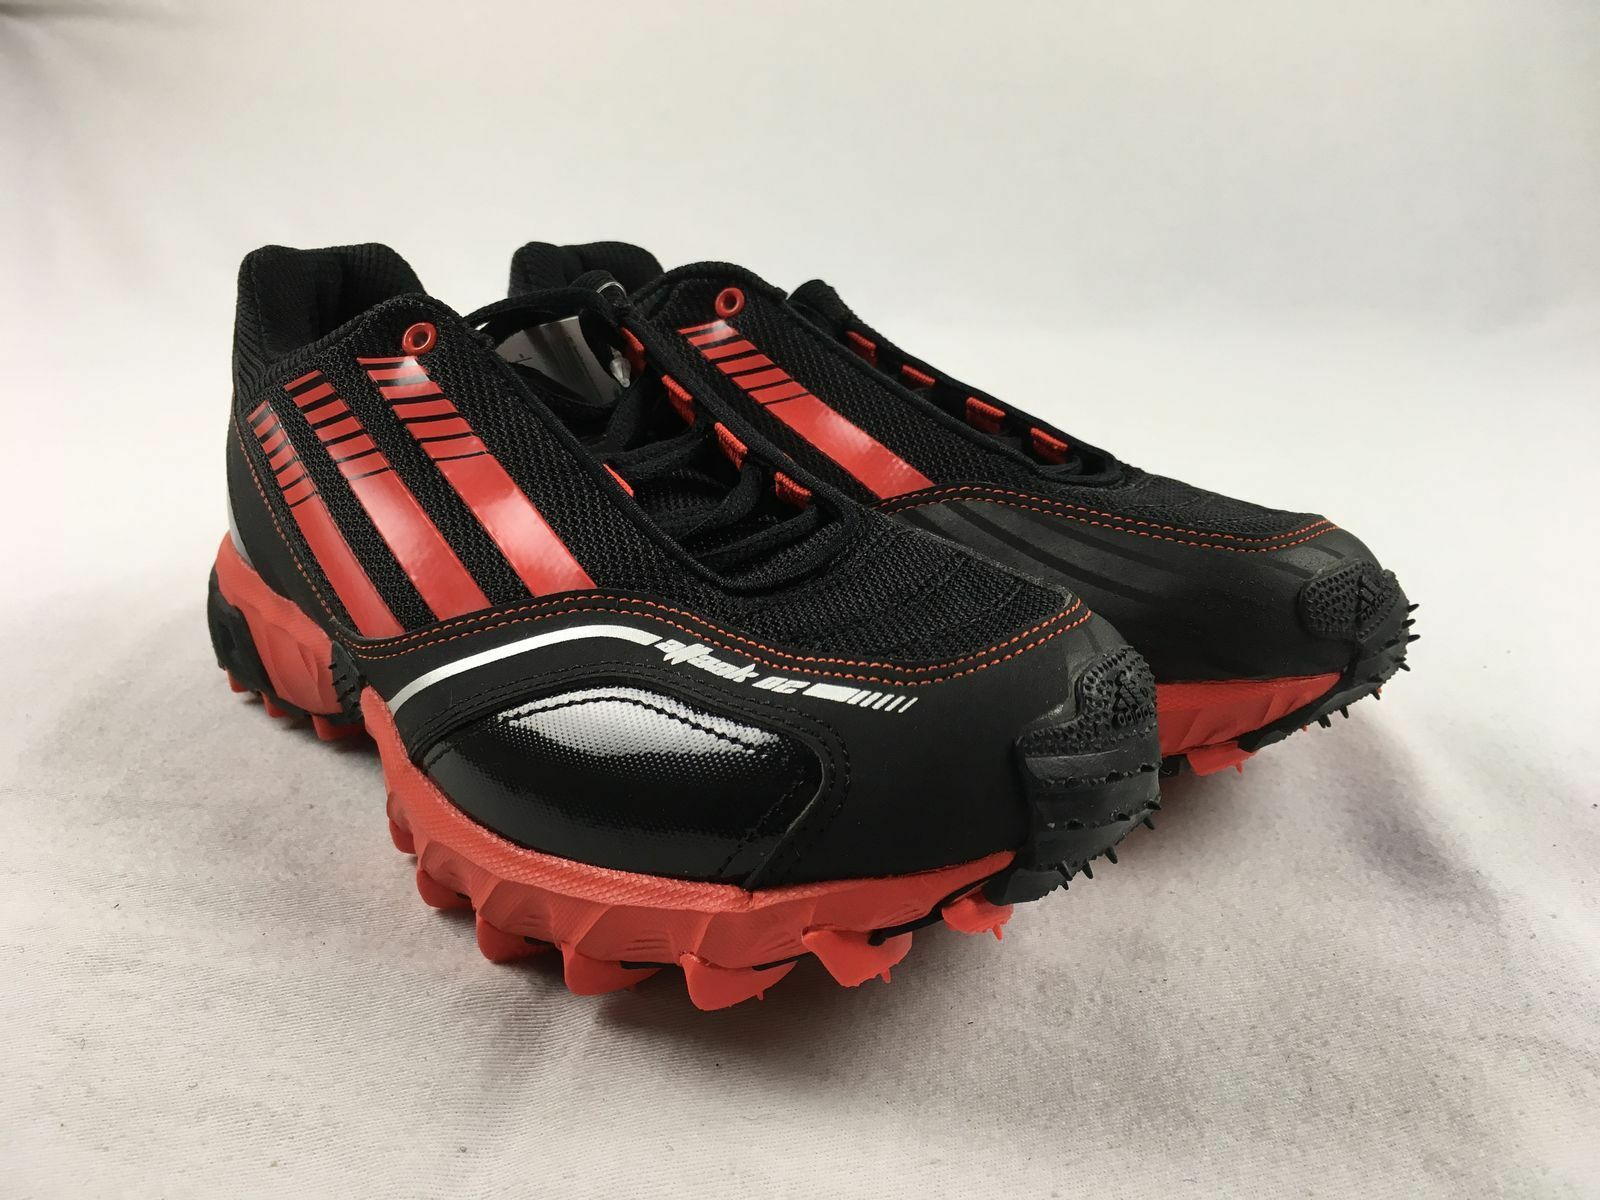 NEW adidas Hockey Attack 2 - Black Red Cleats (Men's 6.5)